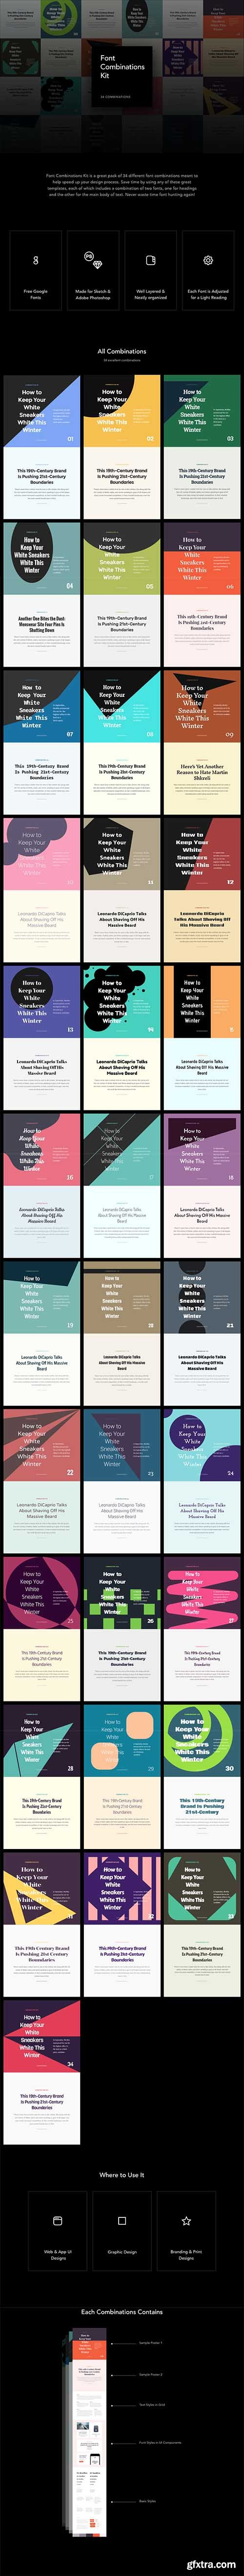 Font Combinations Kit - 34 Excellent font combination templates